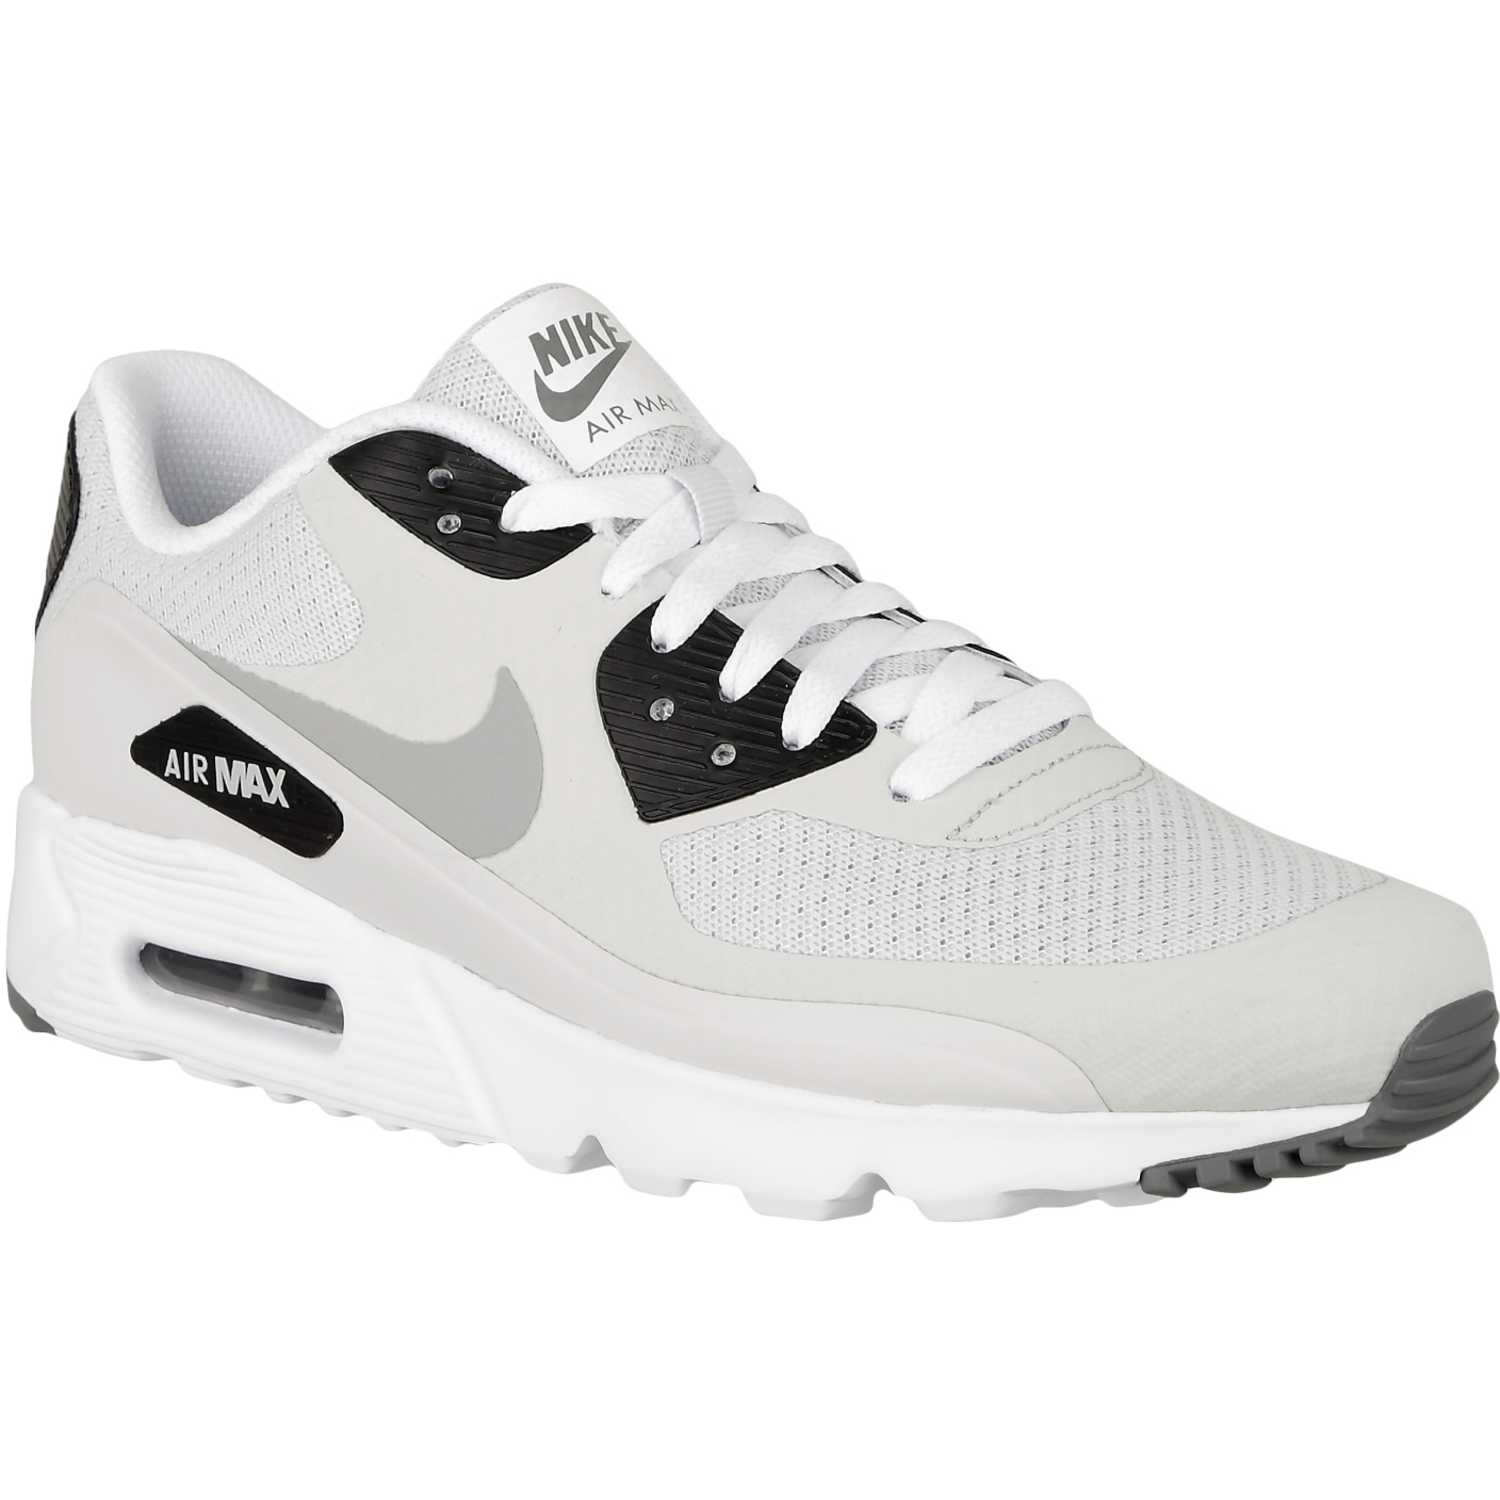 newest 56b2a 0104b Zapatilla de Hombre Nike Blanco / Negro air max 90 ultra essential ...